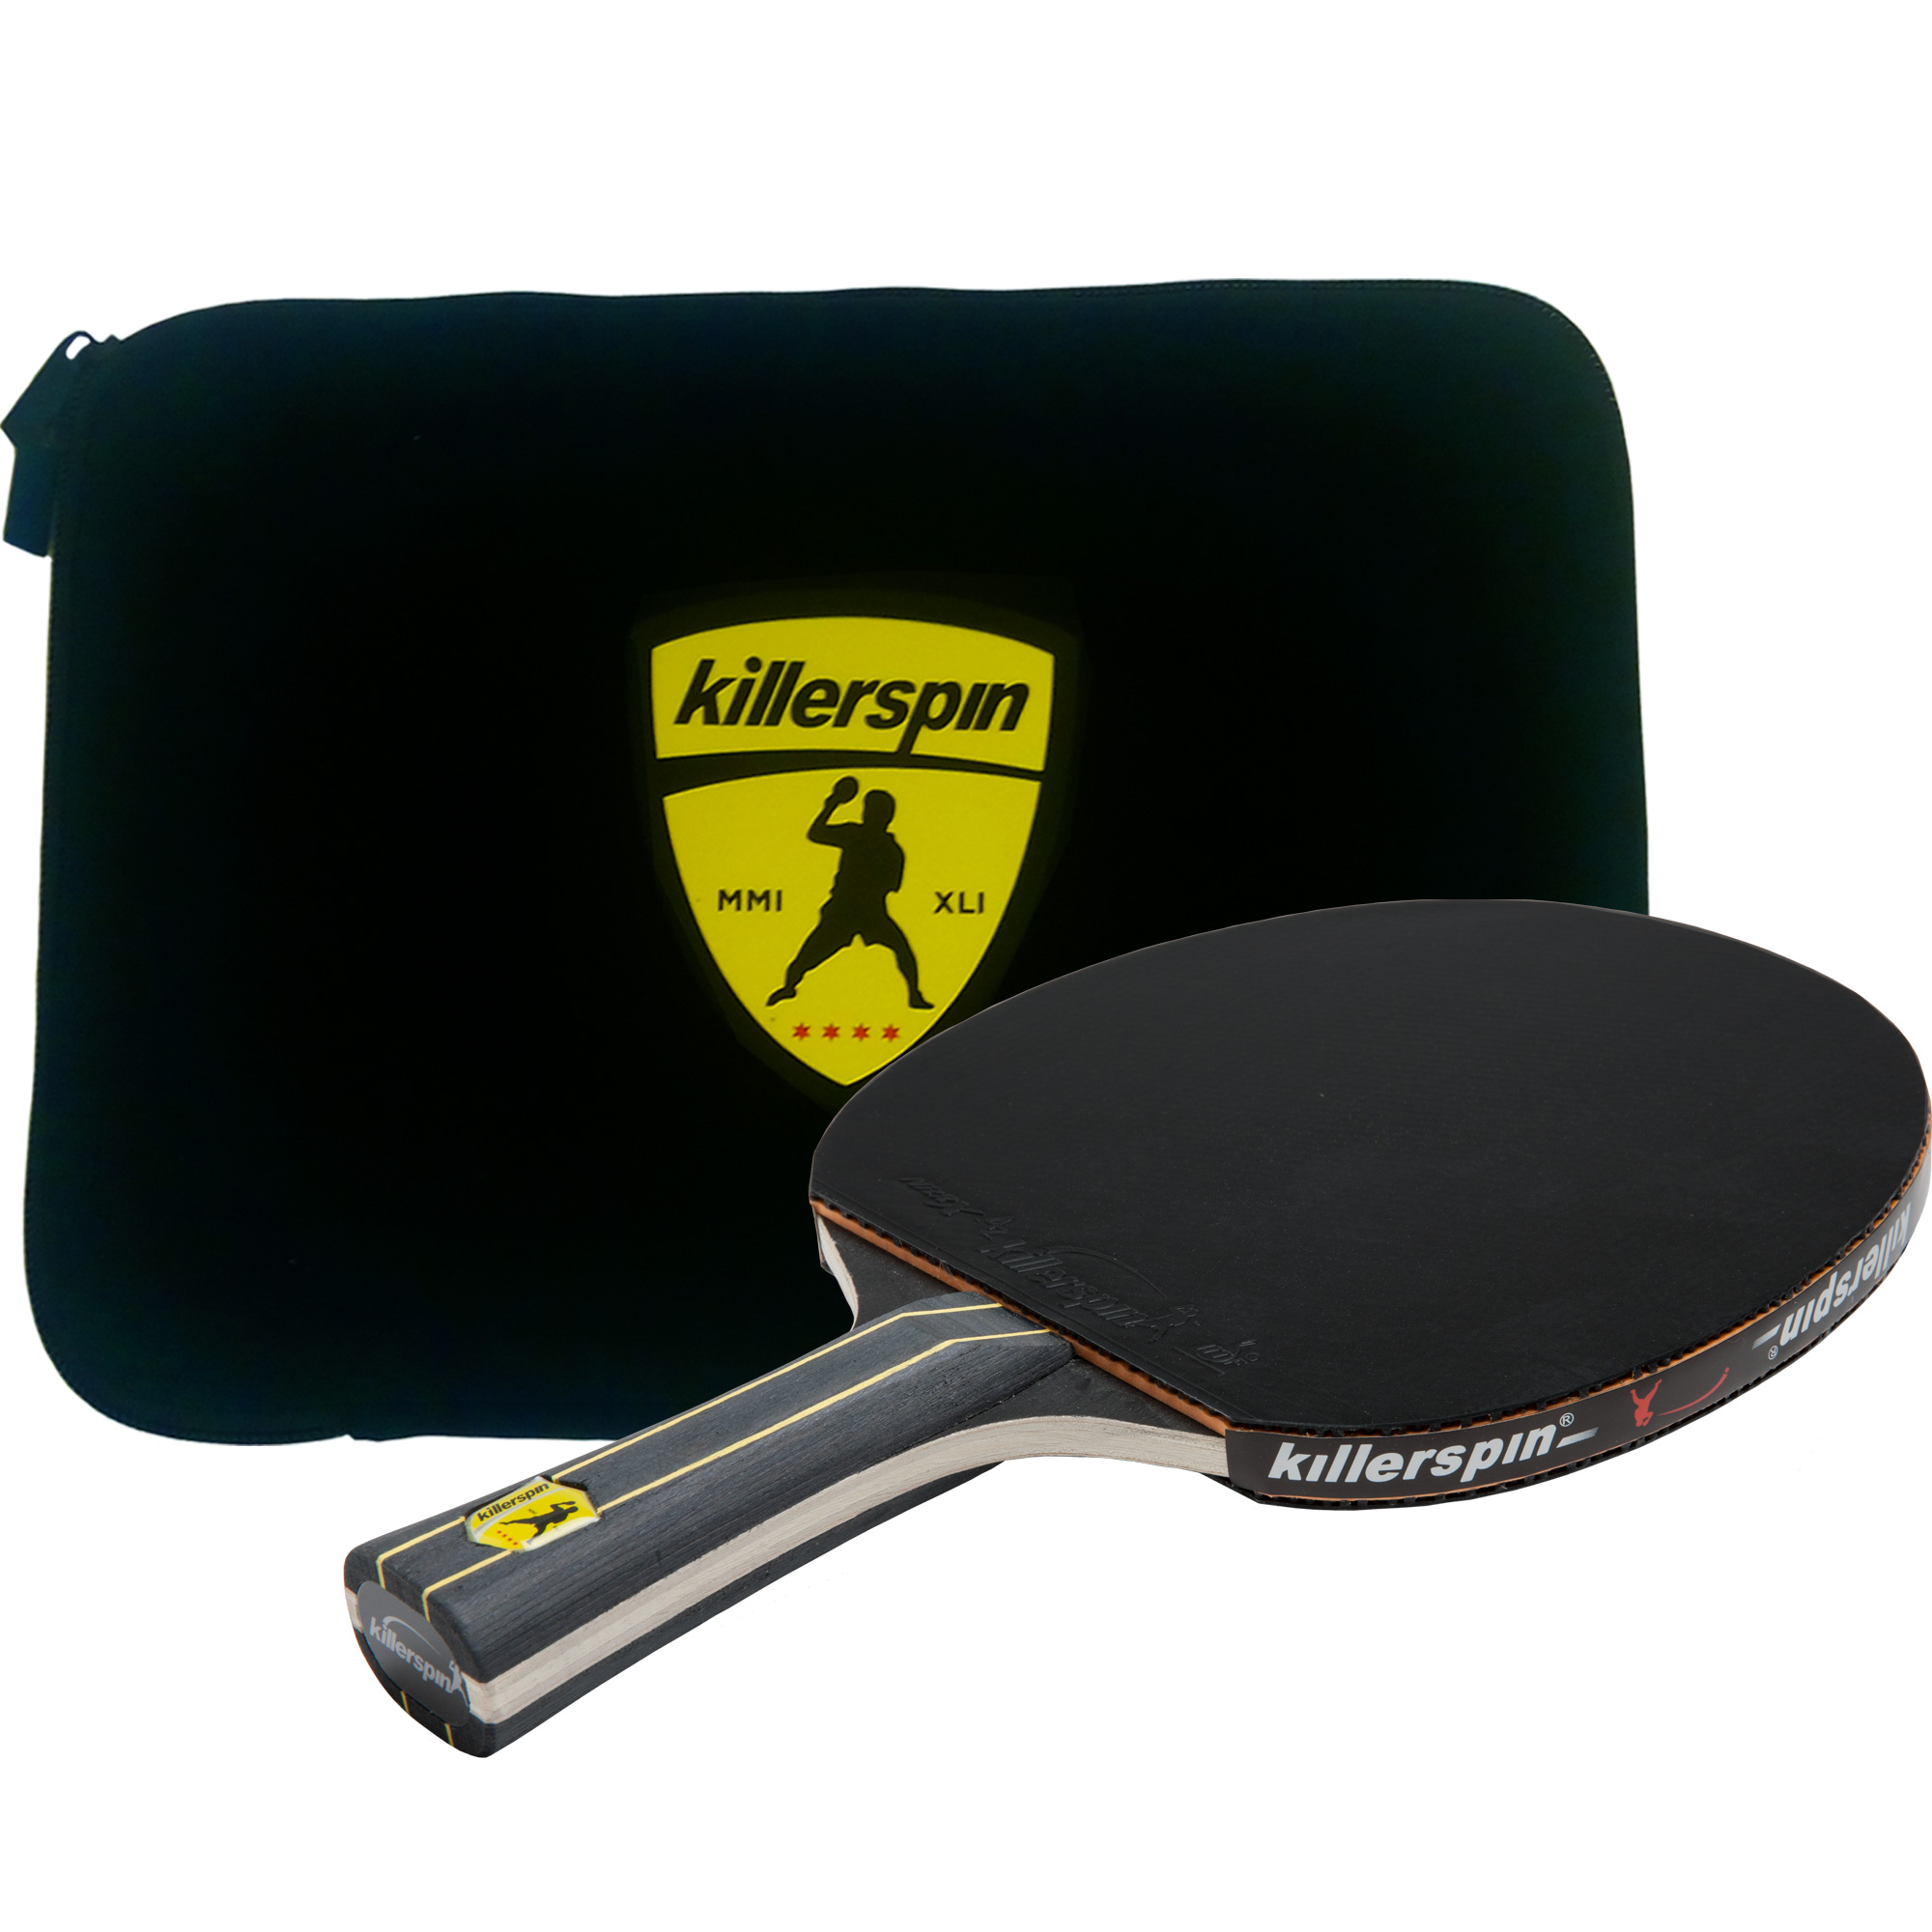 fc55b56f15b Killerspin JET Black Table Tennis Set including Compeititon Paddle with 5  Layer Wood Blade Nitrx-4Z Rubbers - Walmart.com